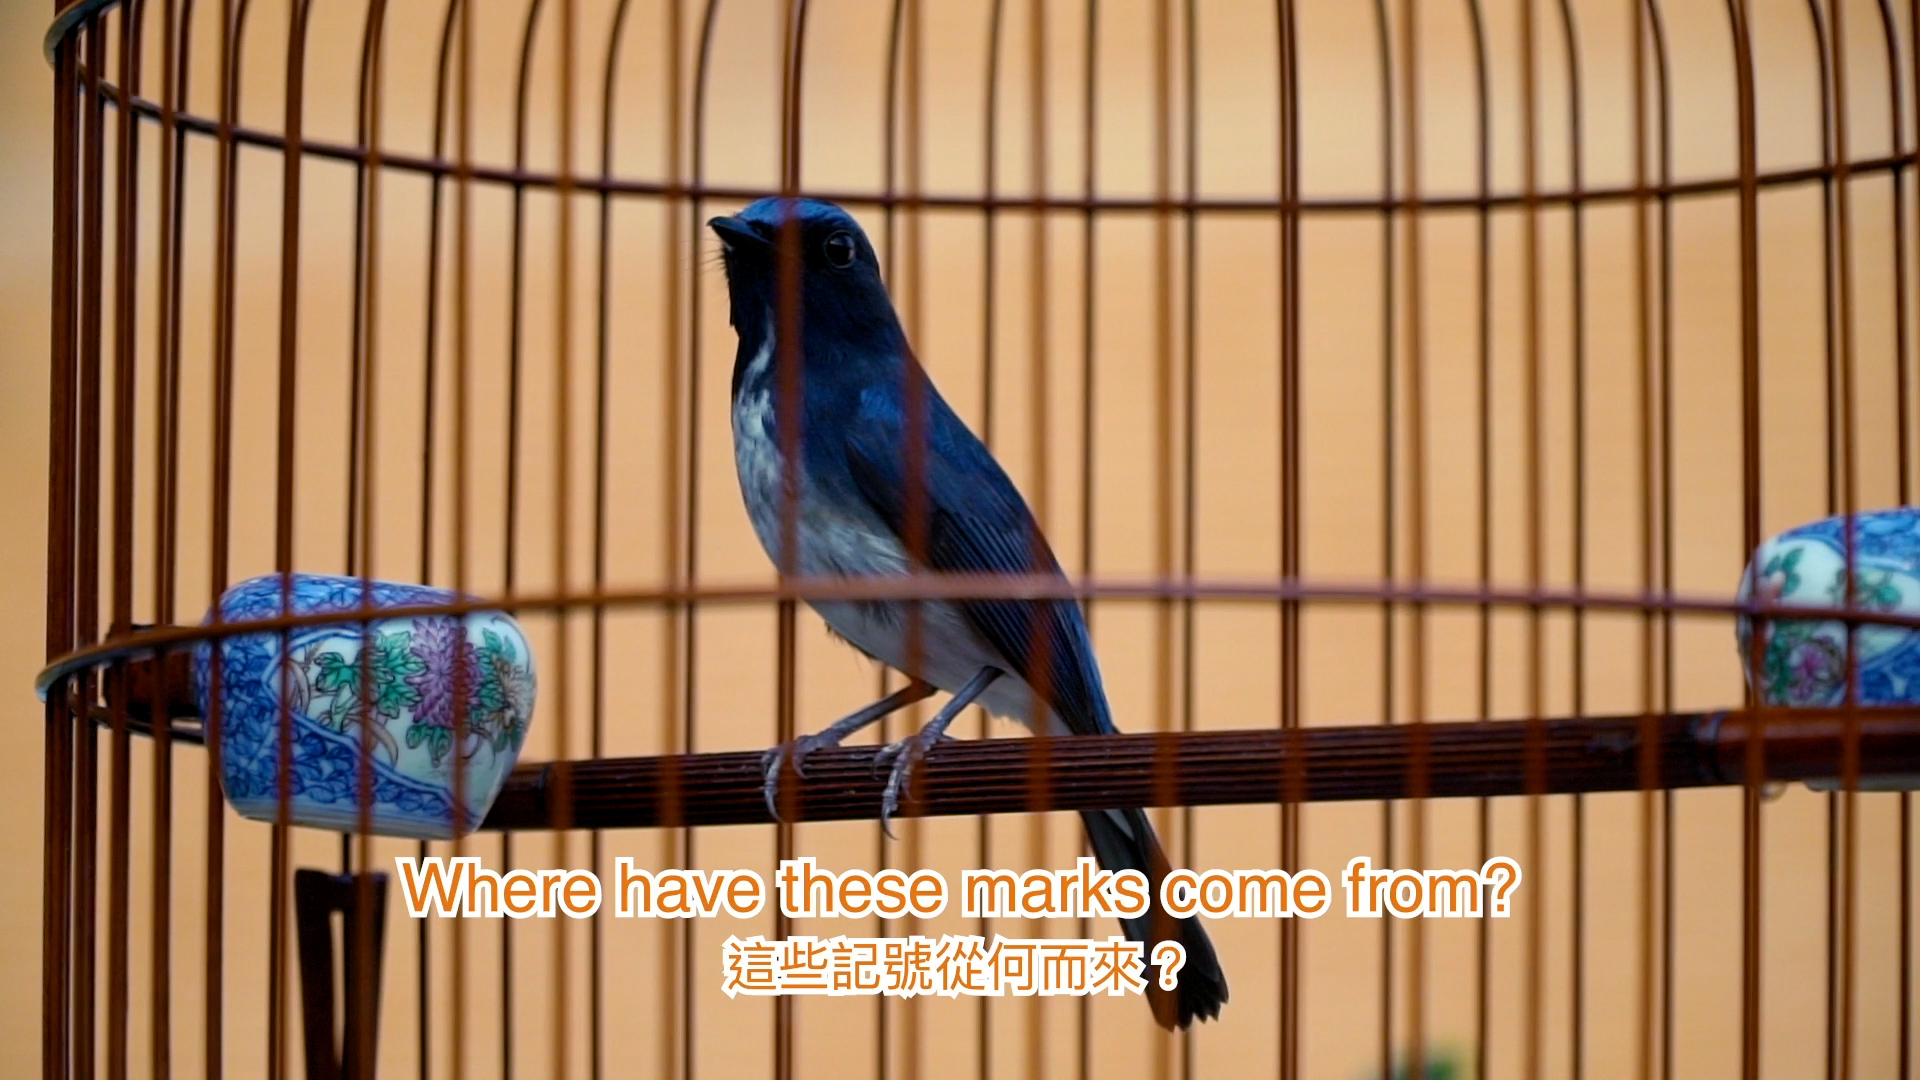 A bird in a cage sits on its perch, beneath it are words in Chinese and English saying Where id you get those marks from?